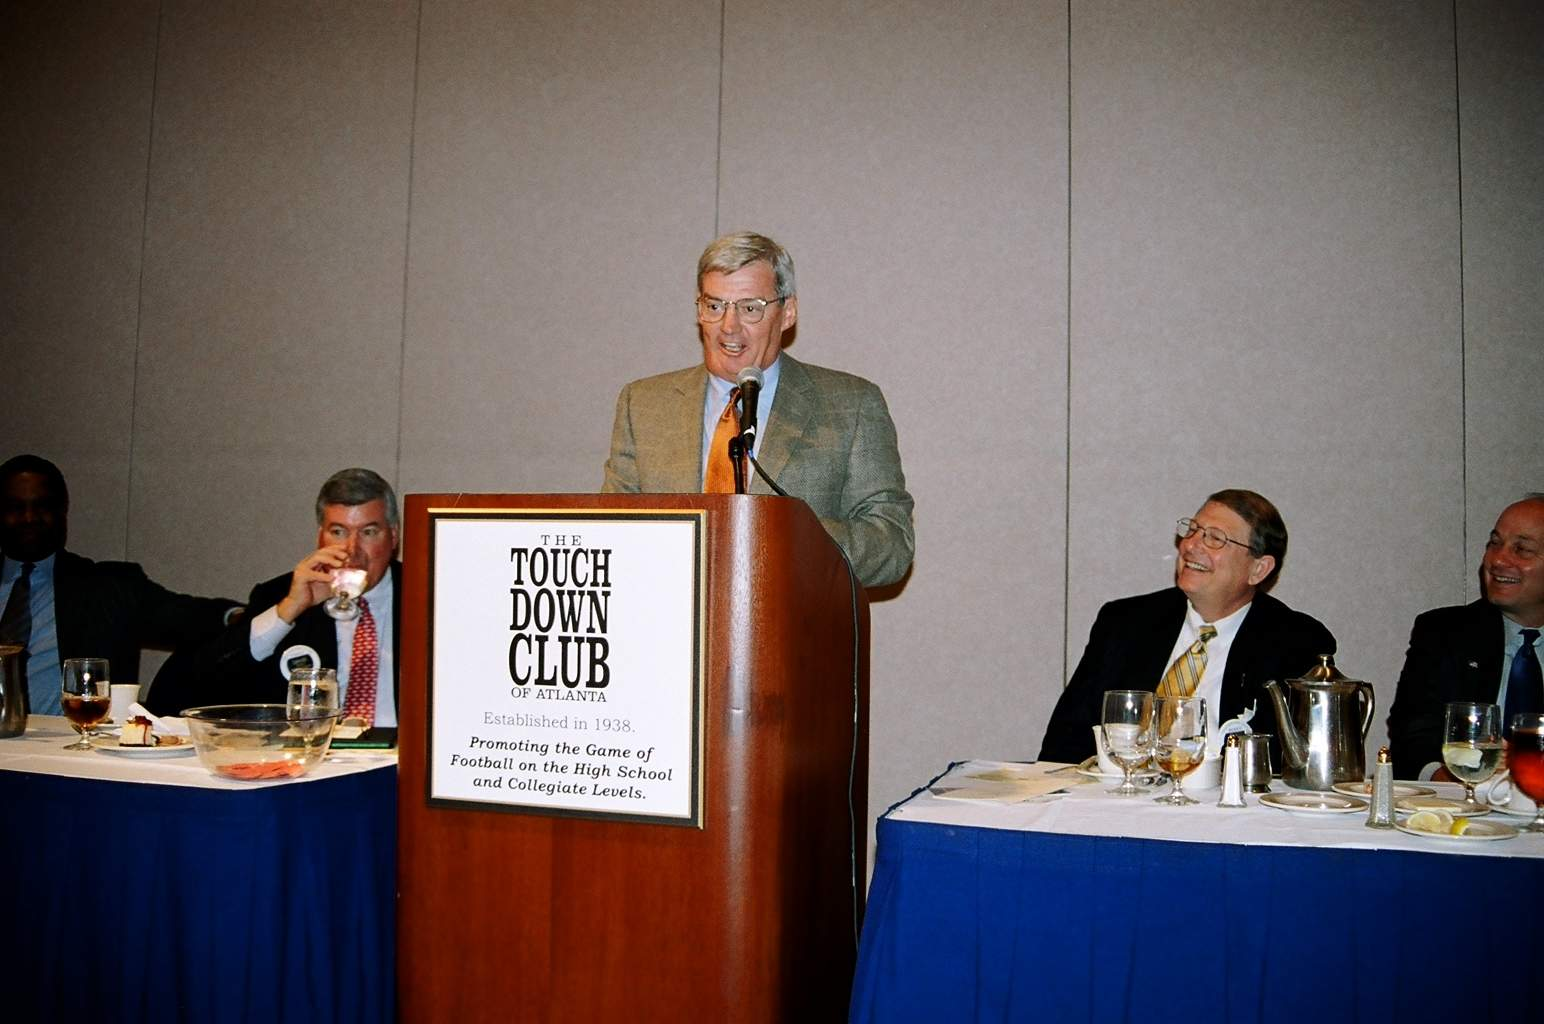 10-18-04 Frank Beamer addressing the TCA